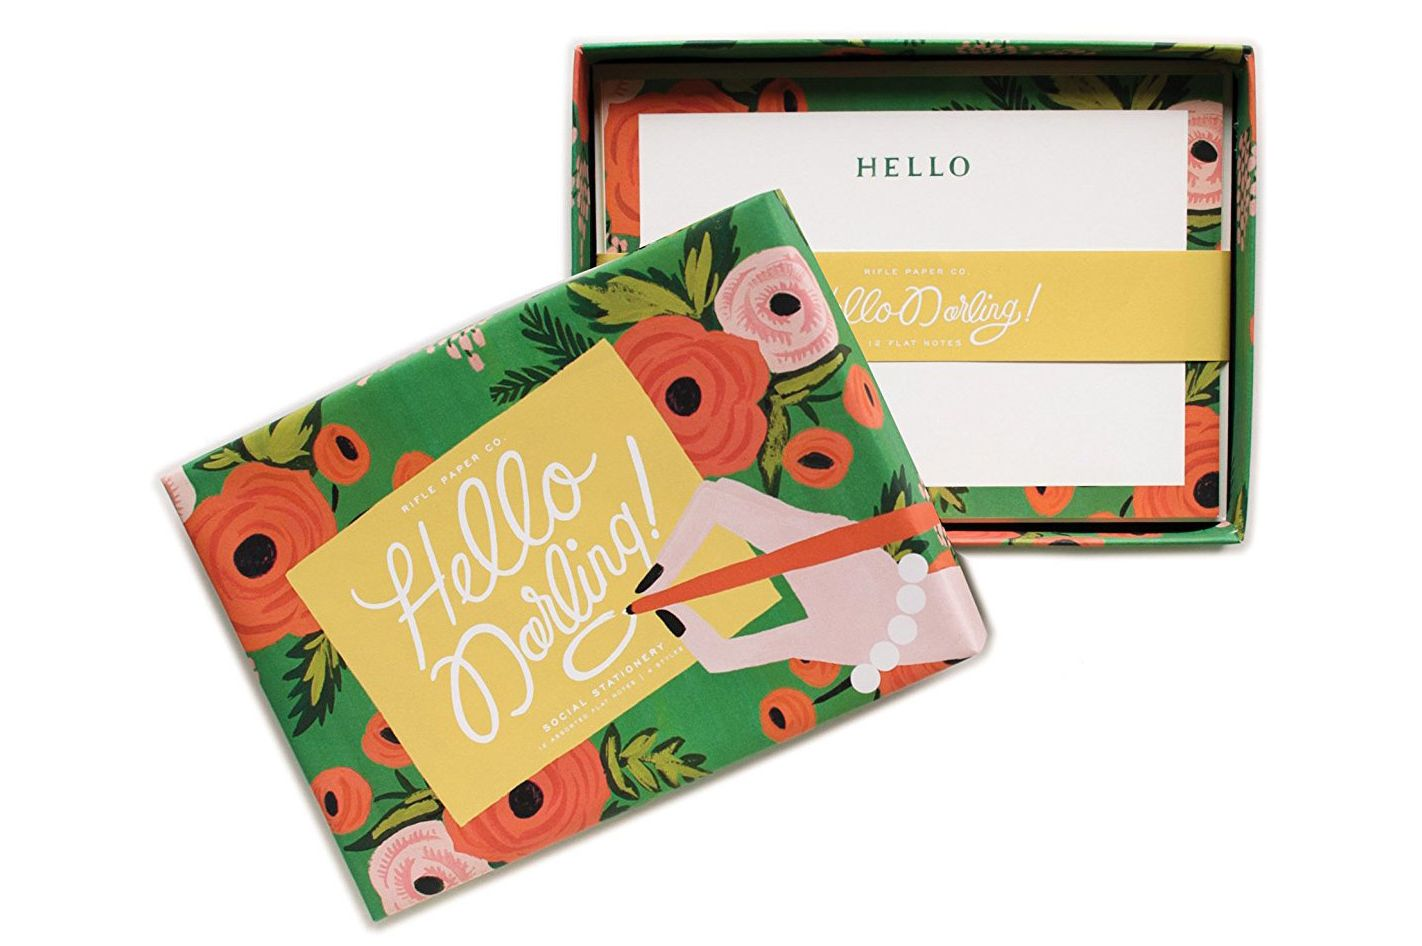 Hello Darling Social Stationery Flat Note Cards by Rifle Paper Co.